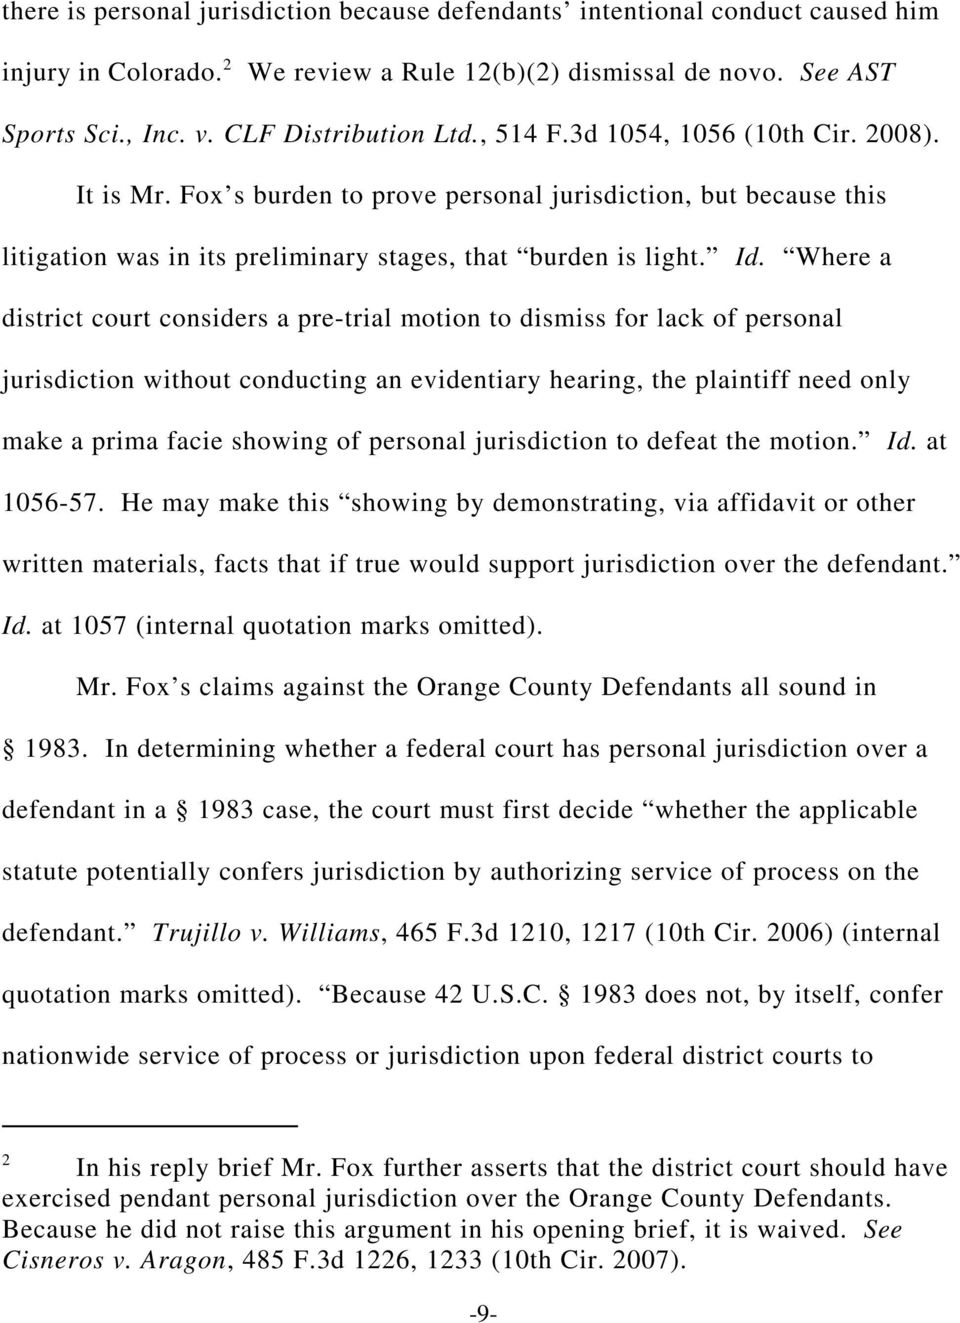 Where a district court considers a pre-trial motion to dismiss for lack of personal jurisdiction without conducting an evidentiary hearing, the plaintiff need only make a prima facie showing of